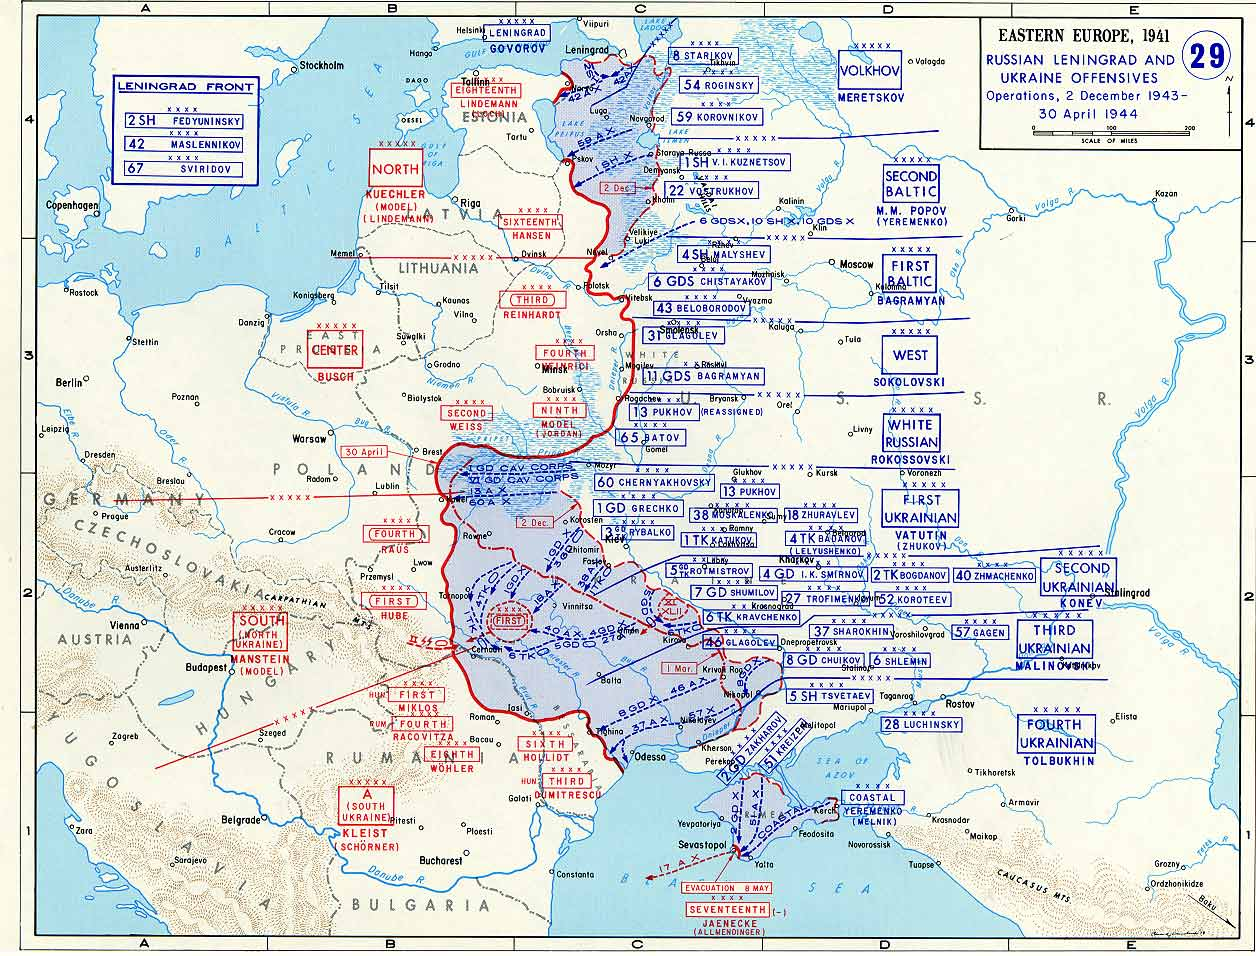 Map of leningrad and ukraine offensives december 1943 april 1944 wwii war theatre maps leningrad and ukraine offensives gumiabroncs Images